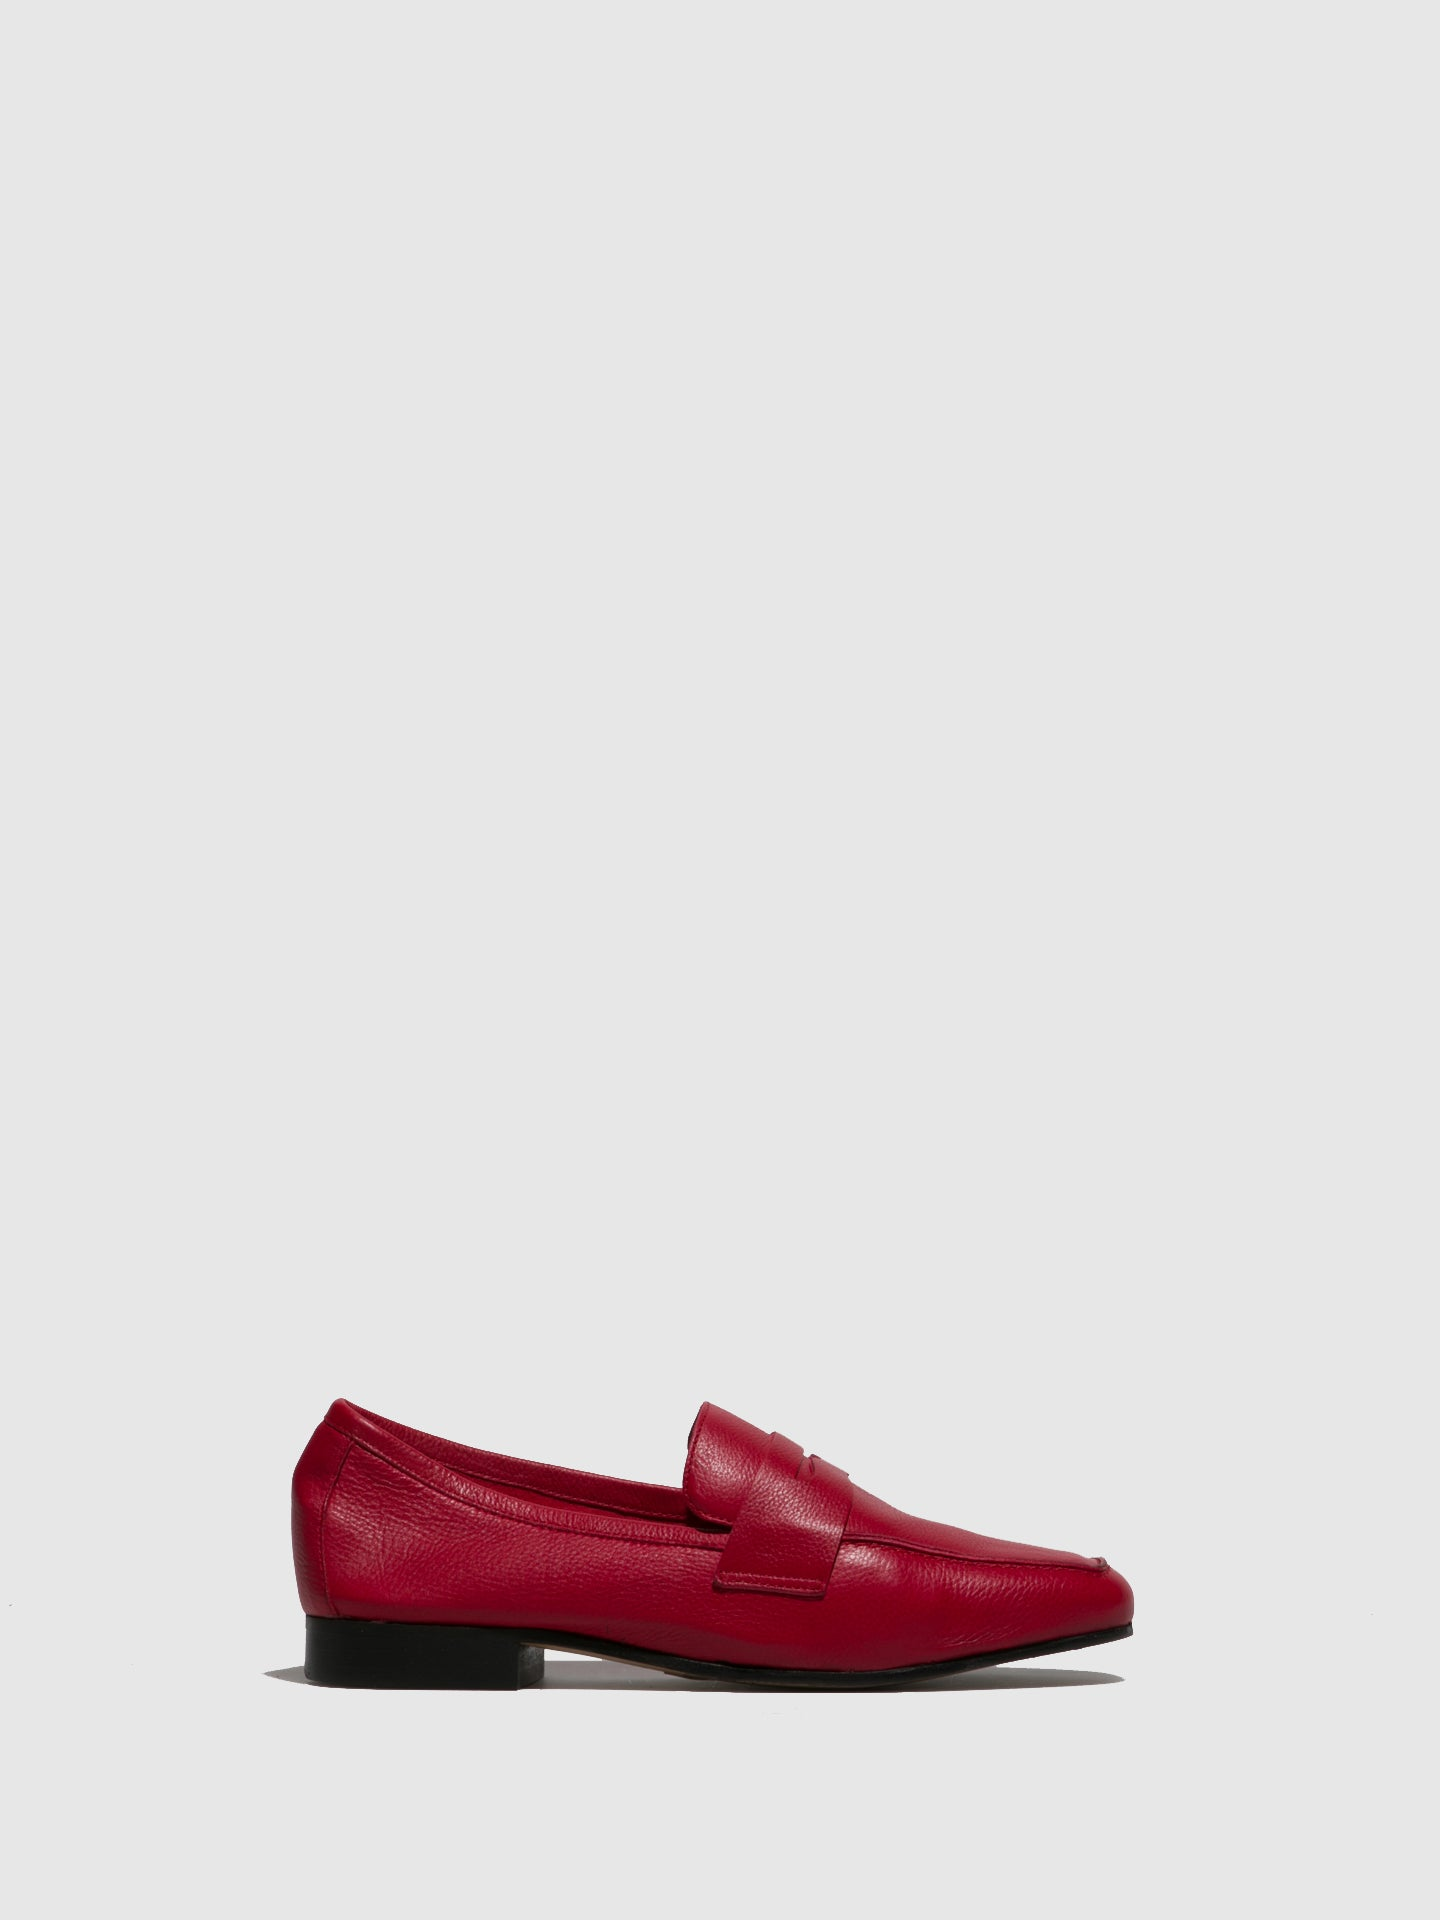 Perlato Red Suede Mocassins Shoes